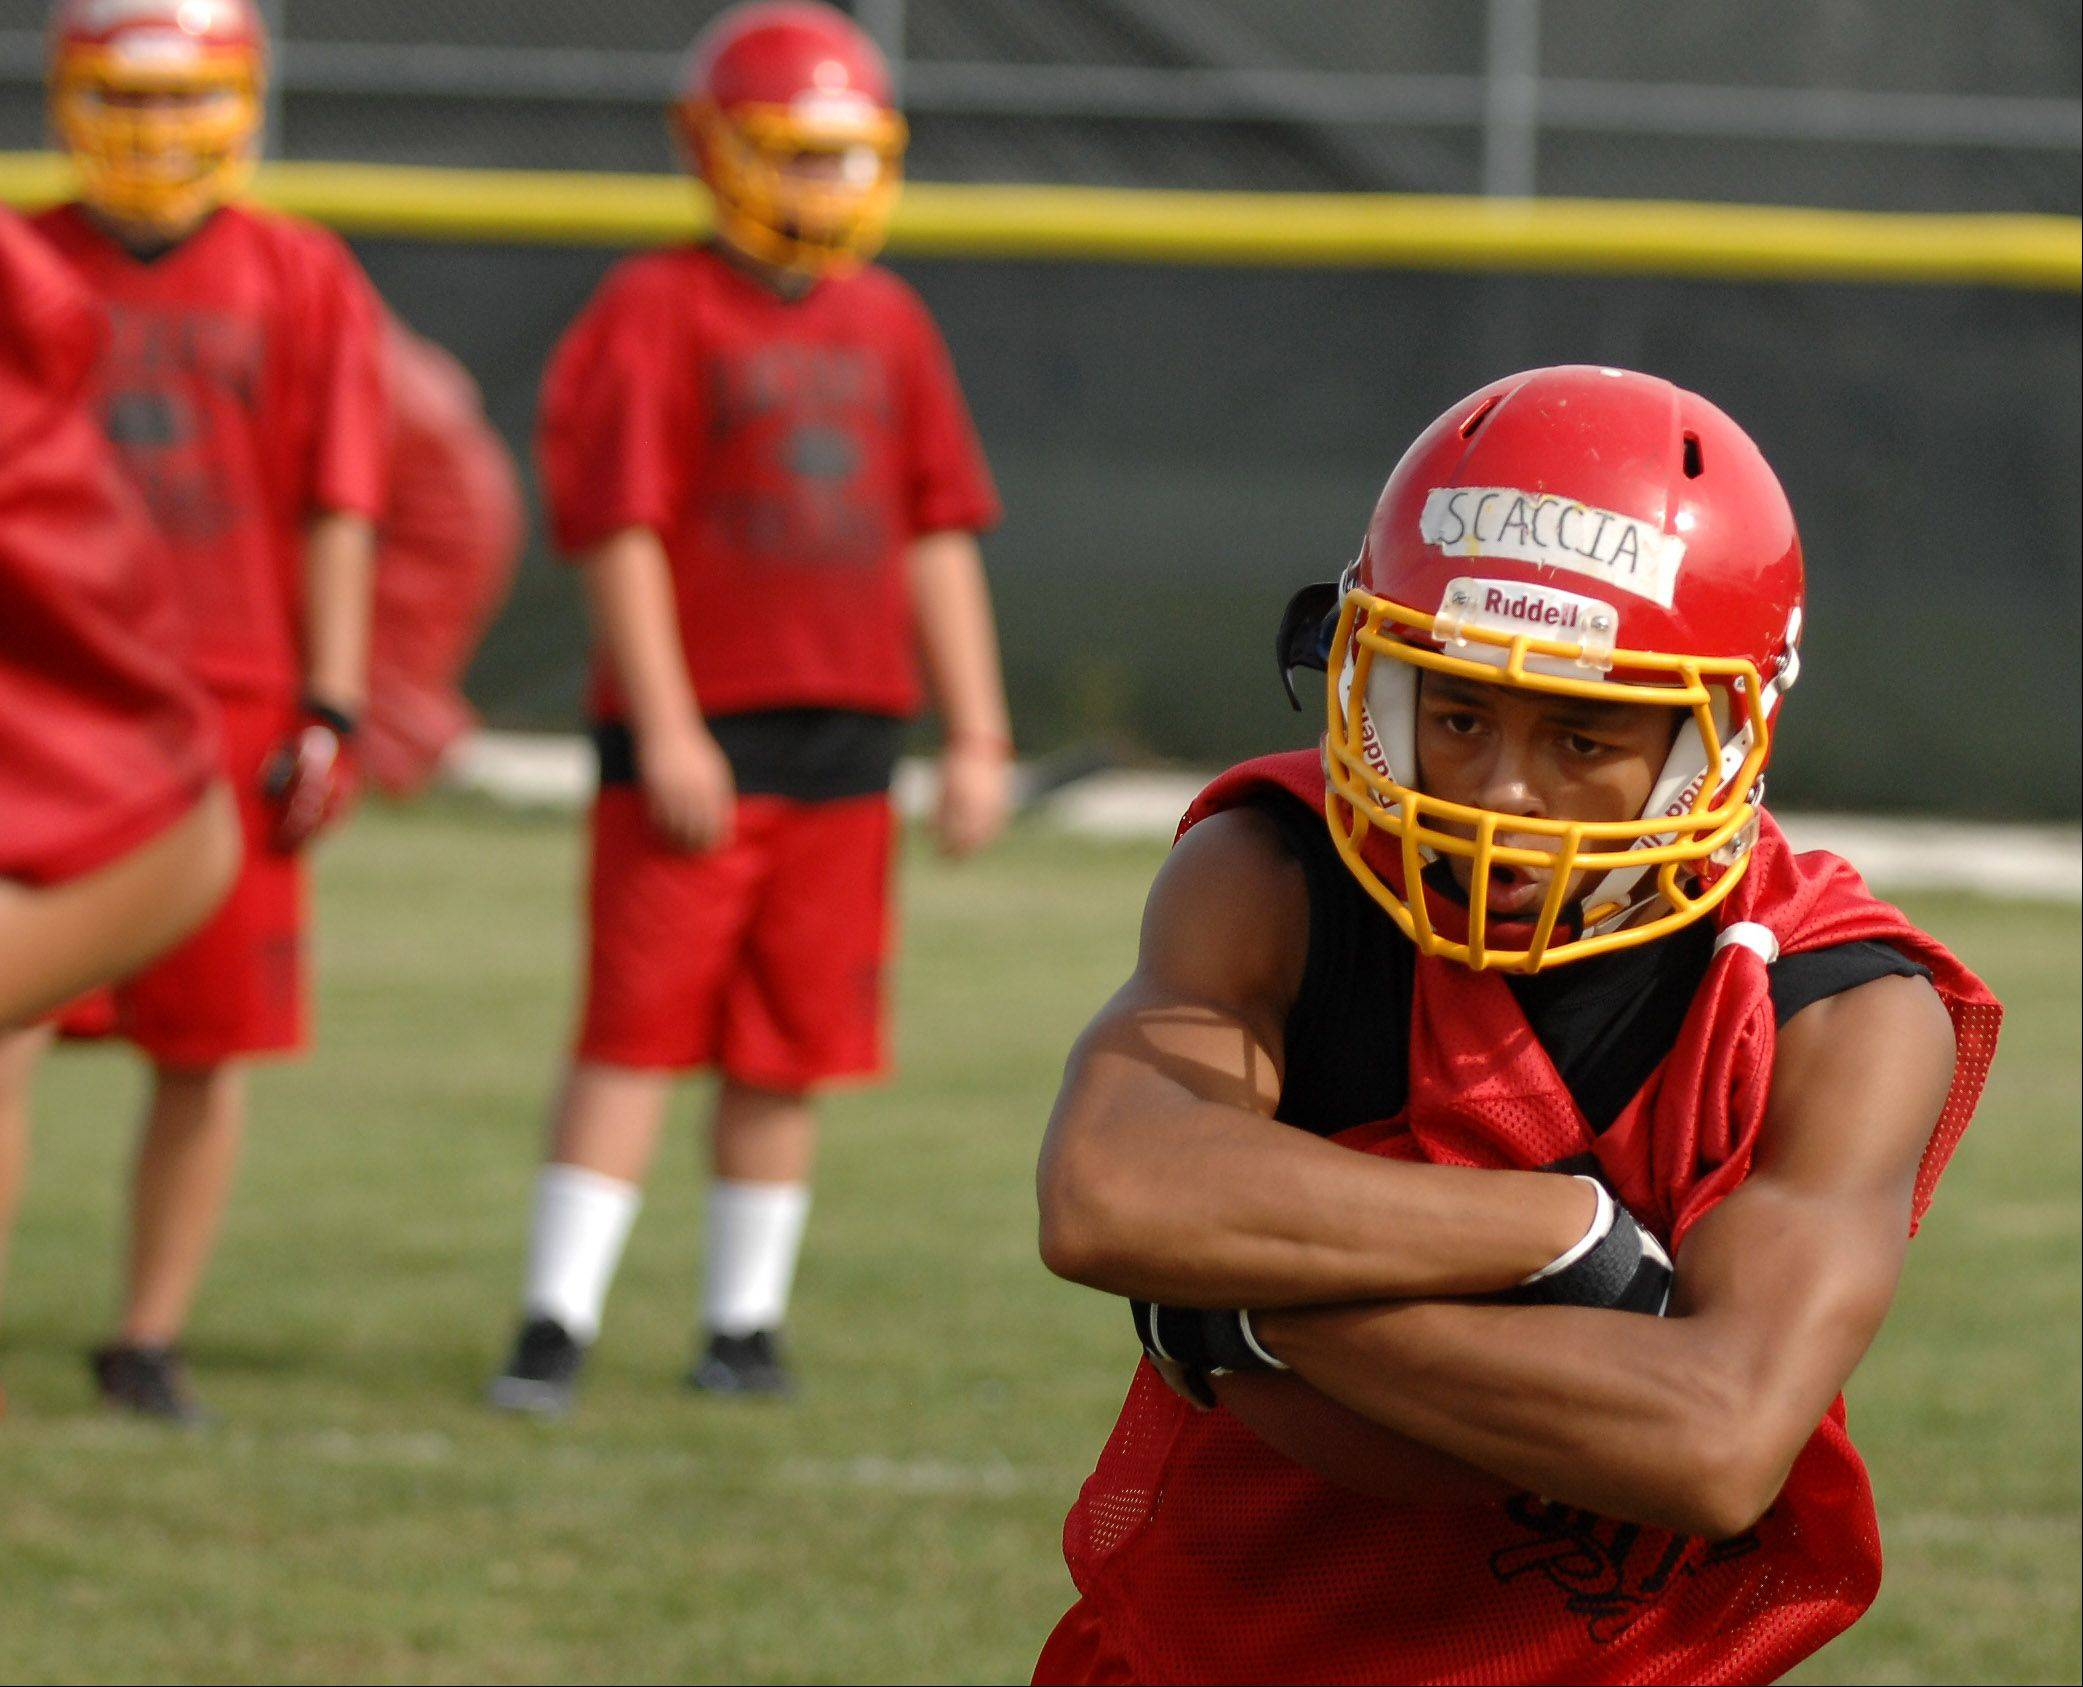 Running back Anthony Scaccia hits the hole during Batavia's first day of football practice Wednesday.